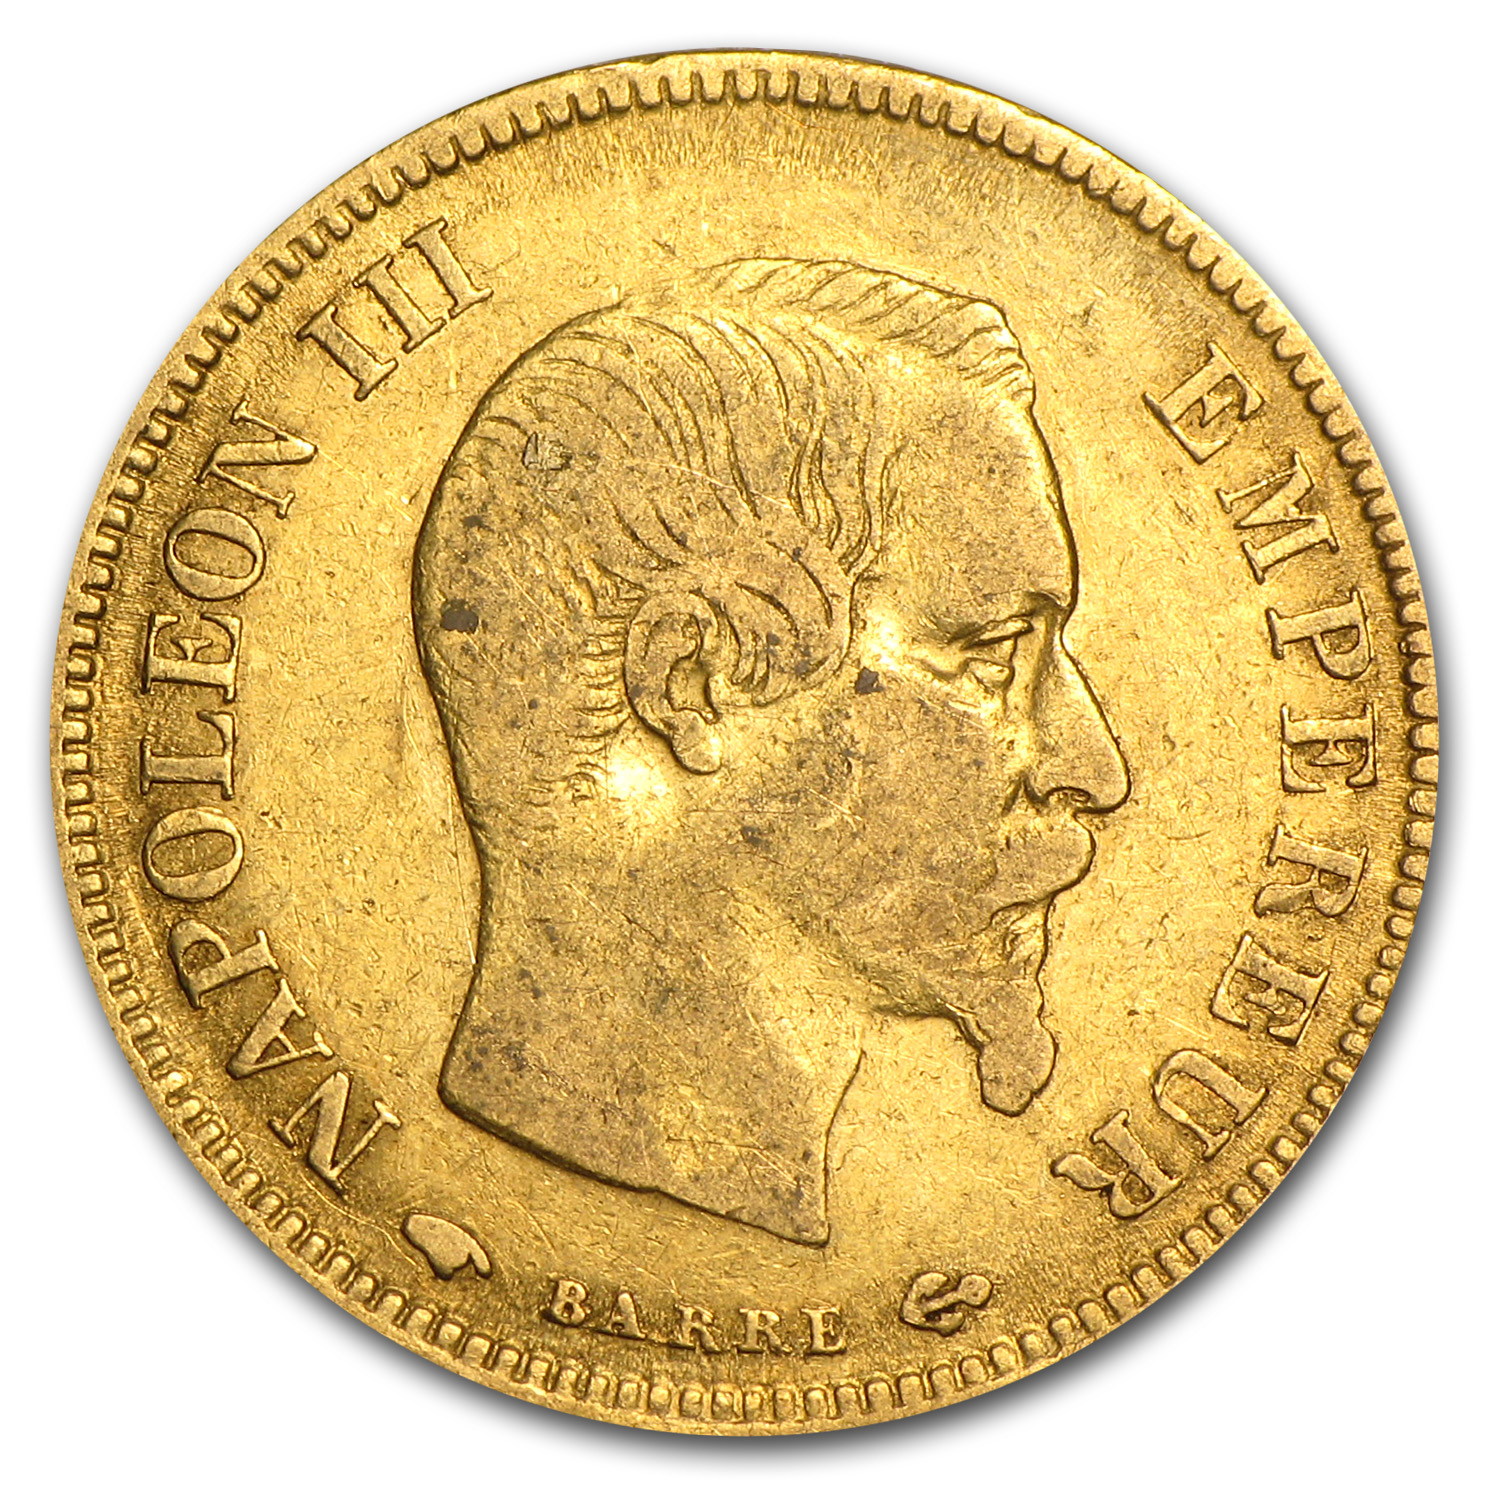 France Gold 10 Francs (Napoleon III) (Average Circulated)